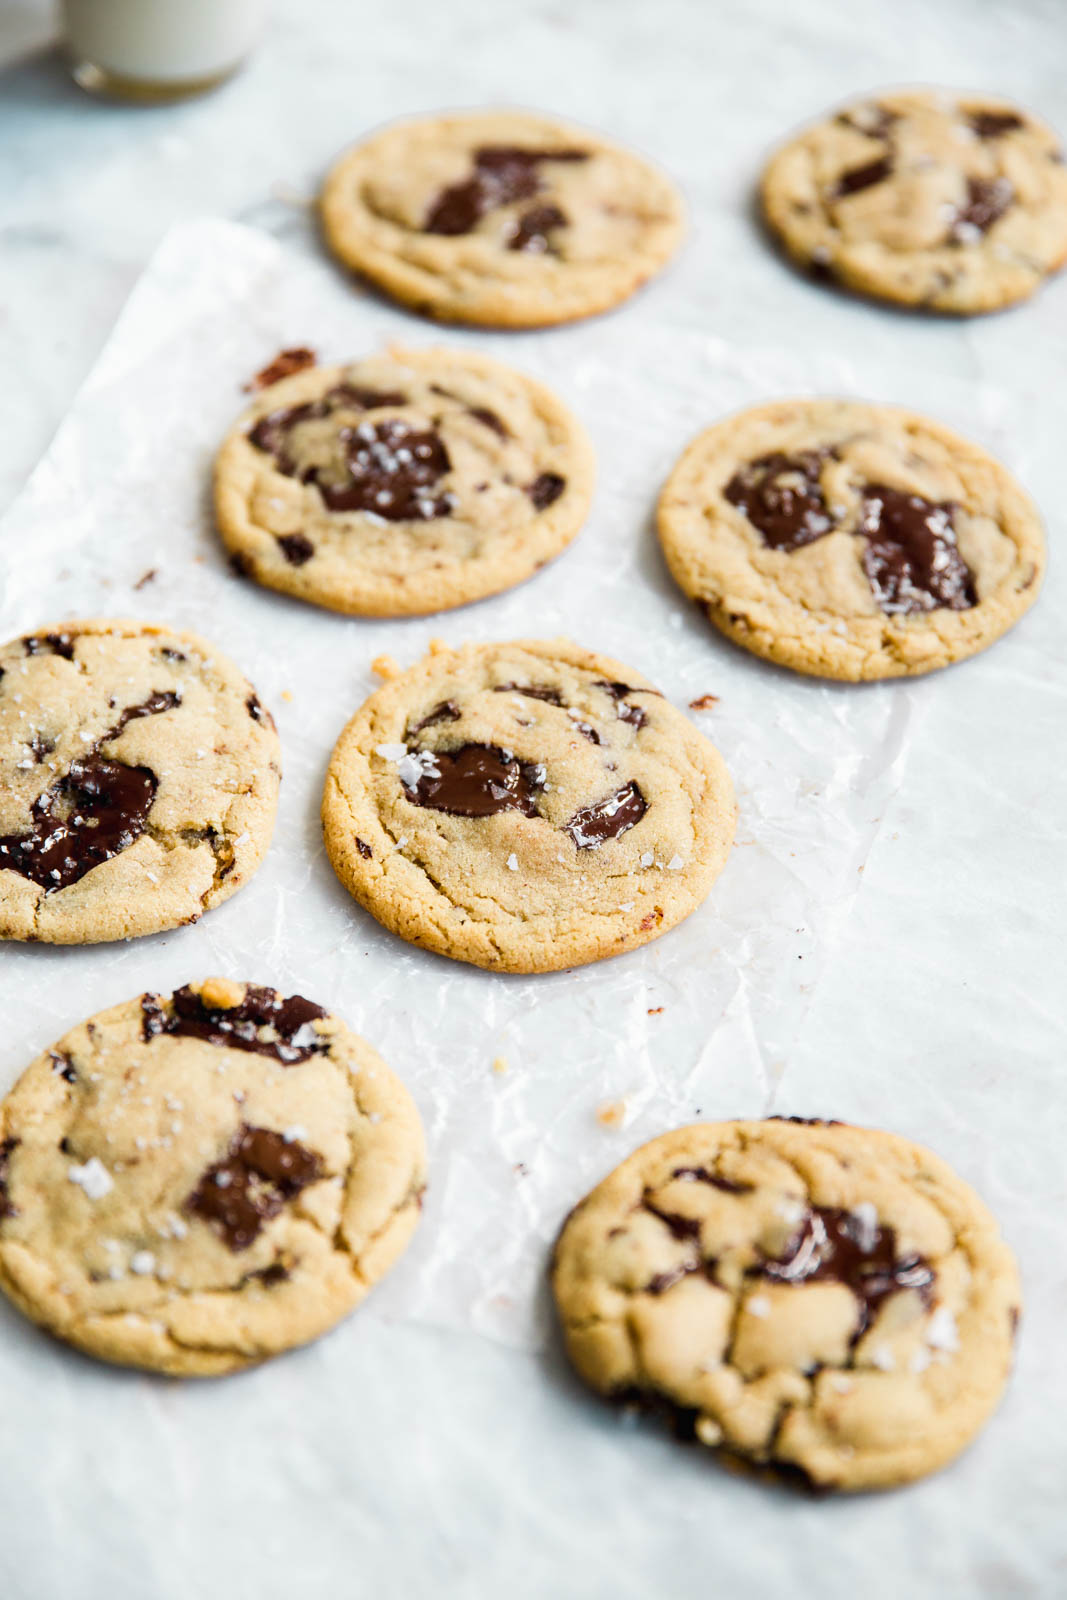 Hands down The Best Tahini Chocolate Chip Cookies In The World. Golden brown and baked to perfection with that addicting bakery-style chewiness and giant chunks of chocolate!